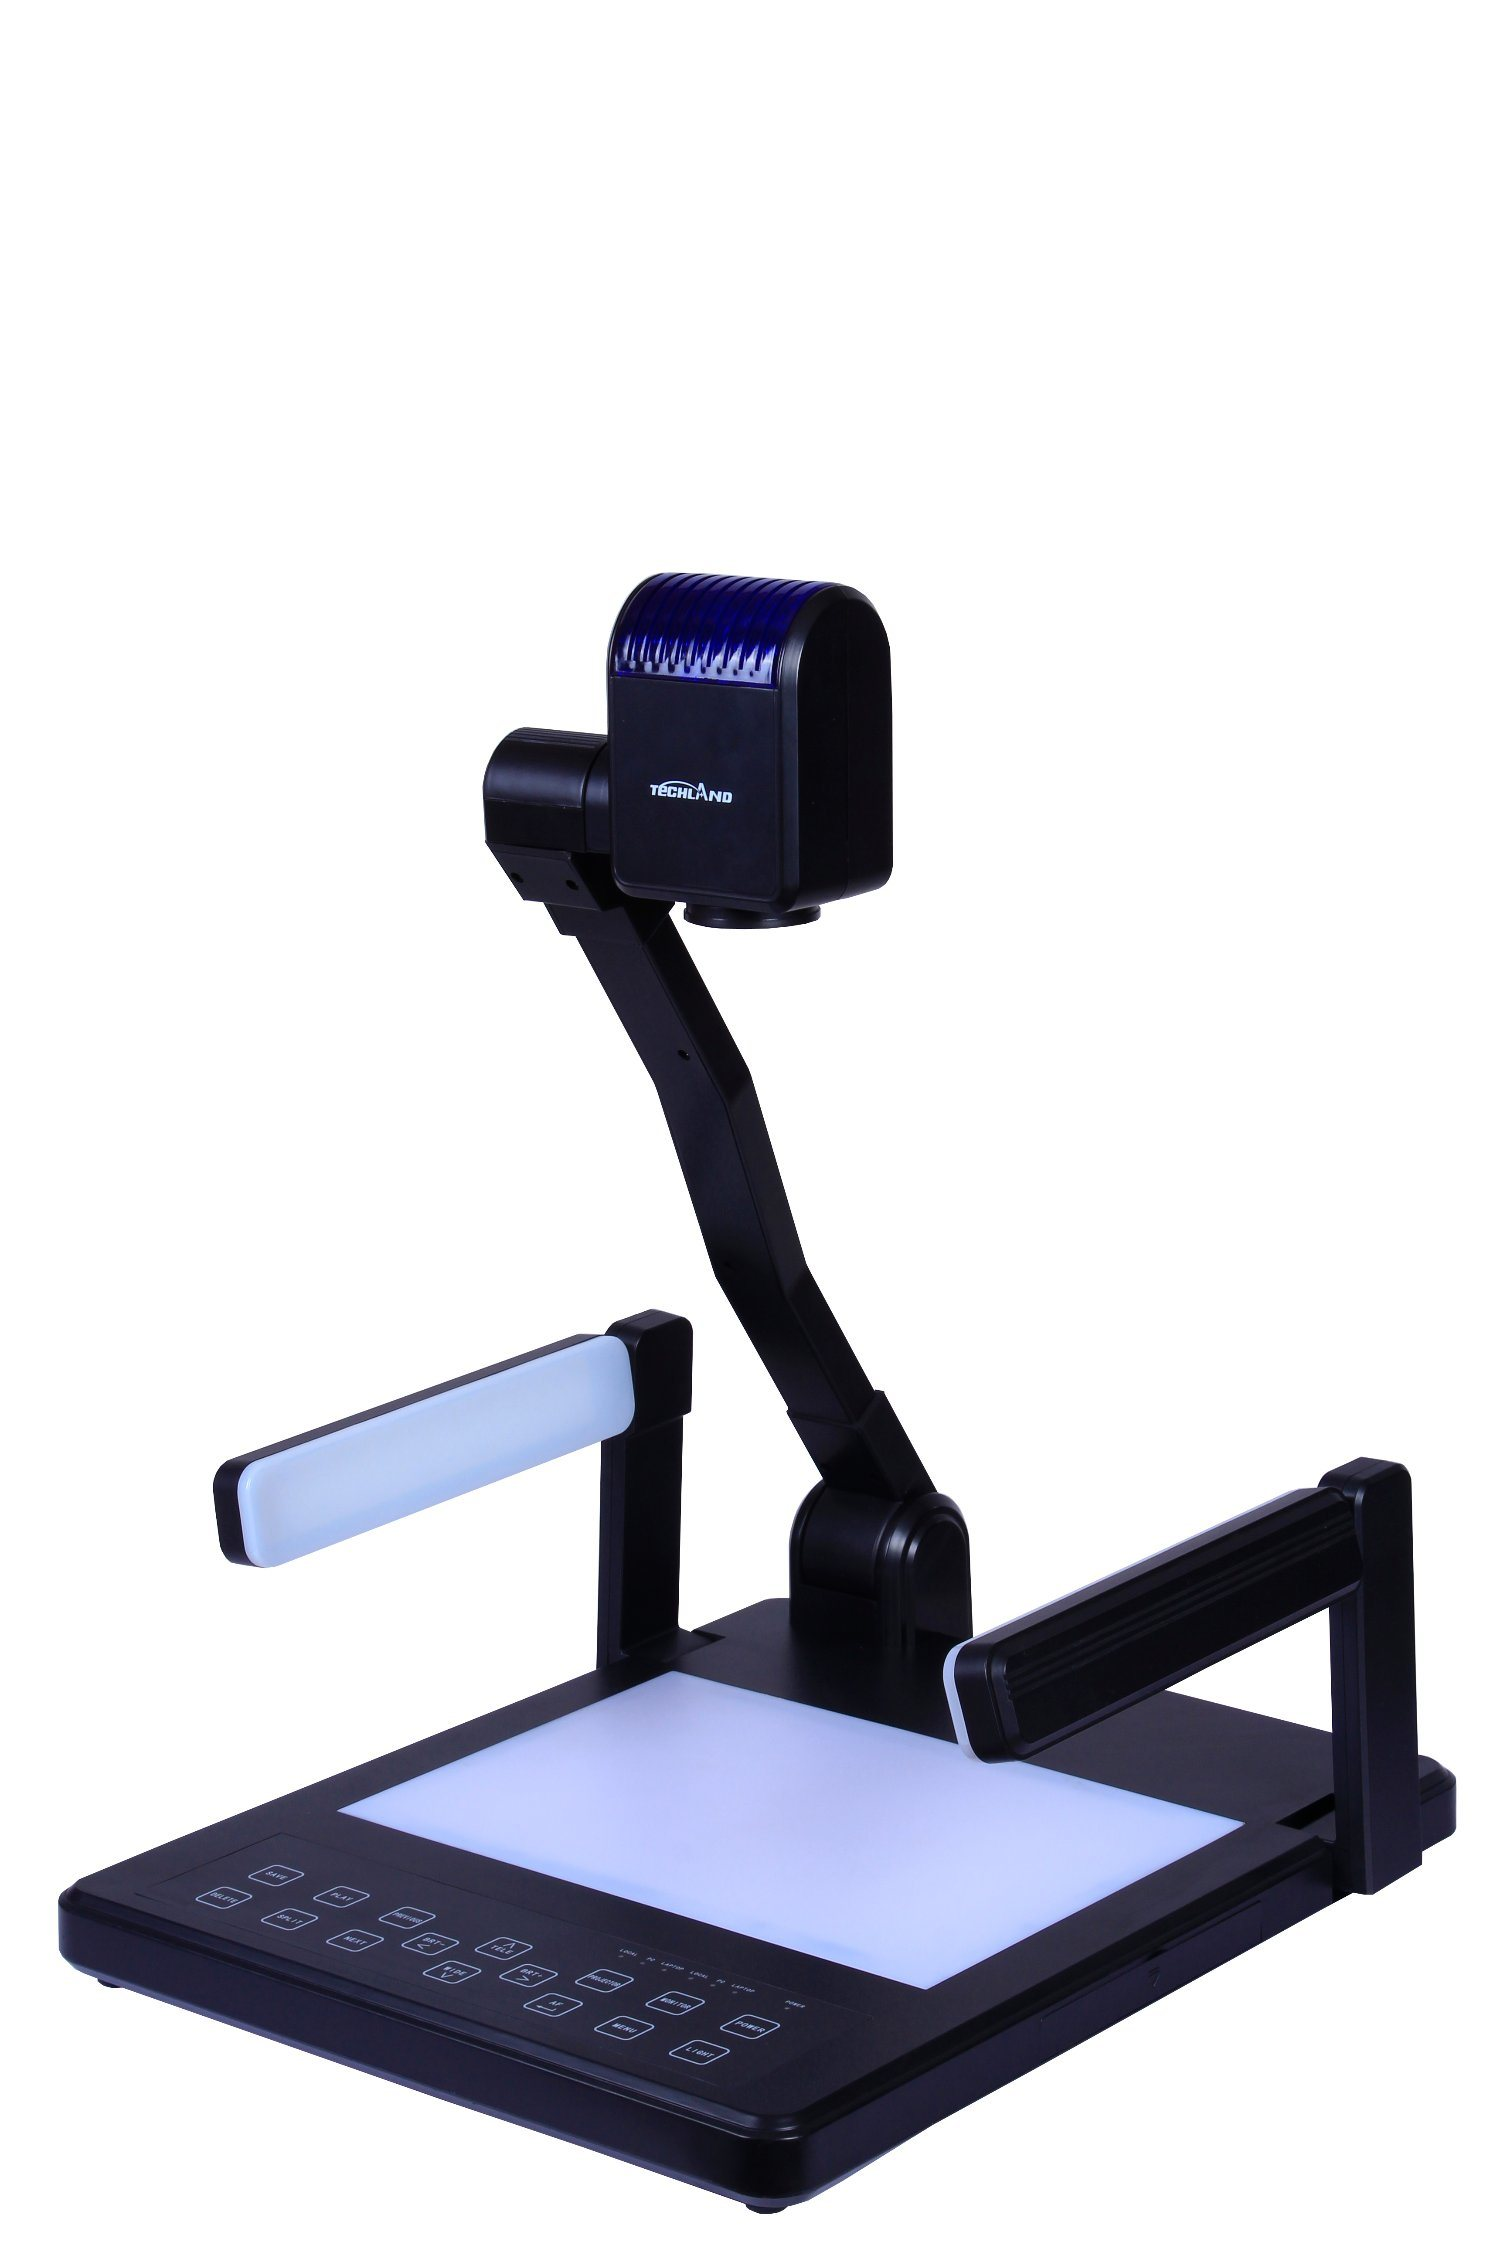 Conference Equipment Document Camera Desktop Visualizer for Teaching Lesson